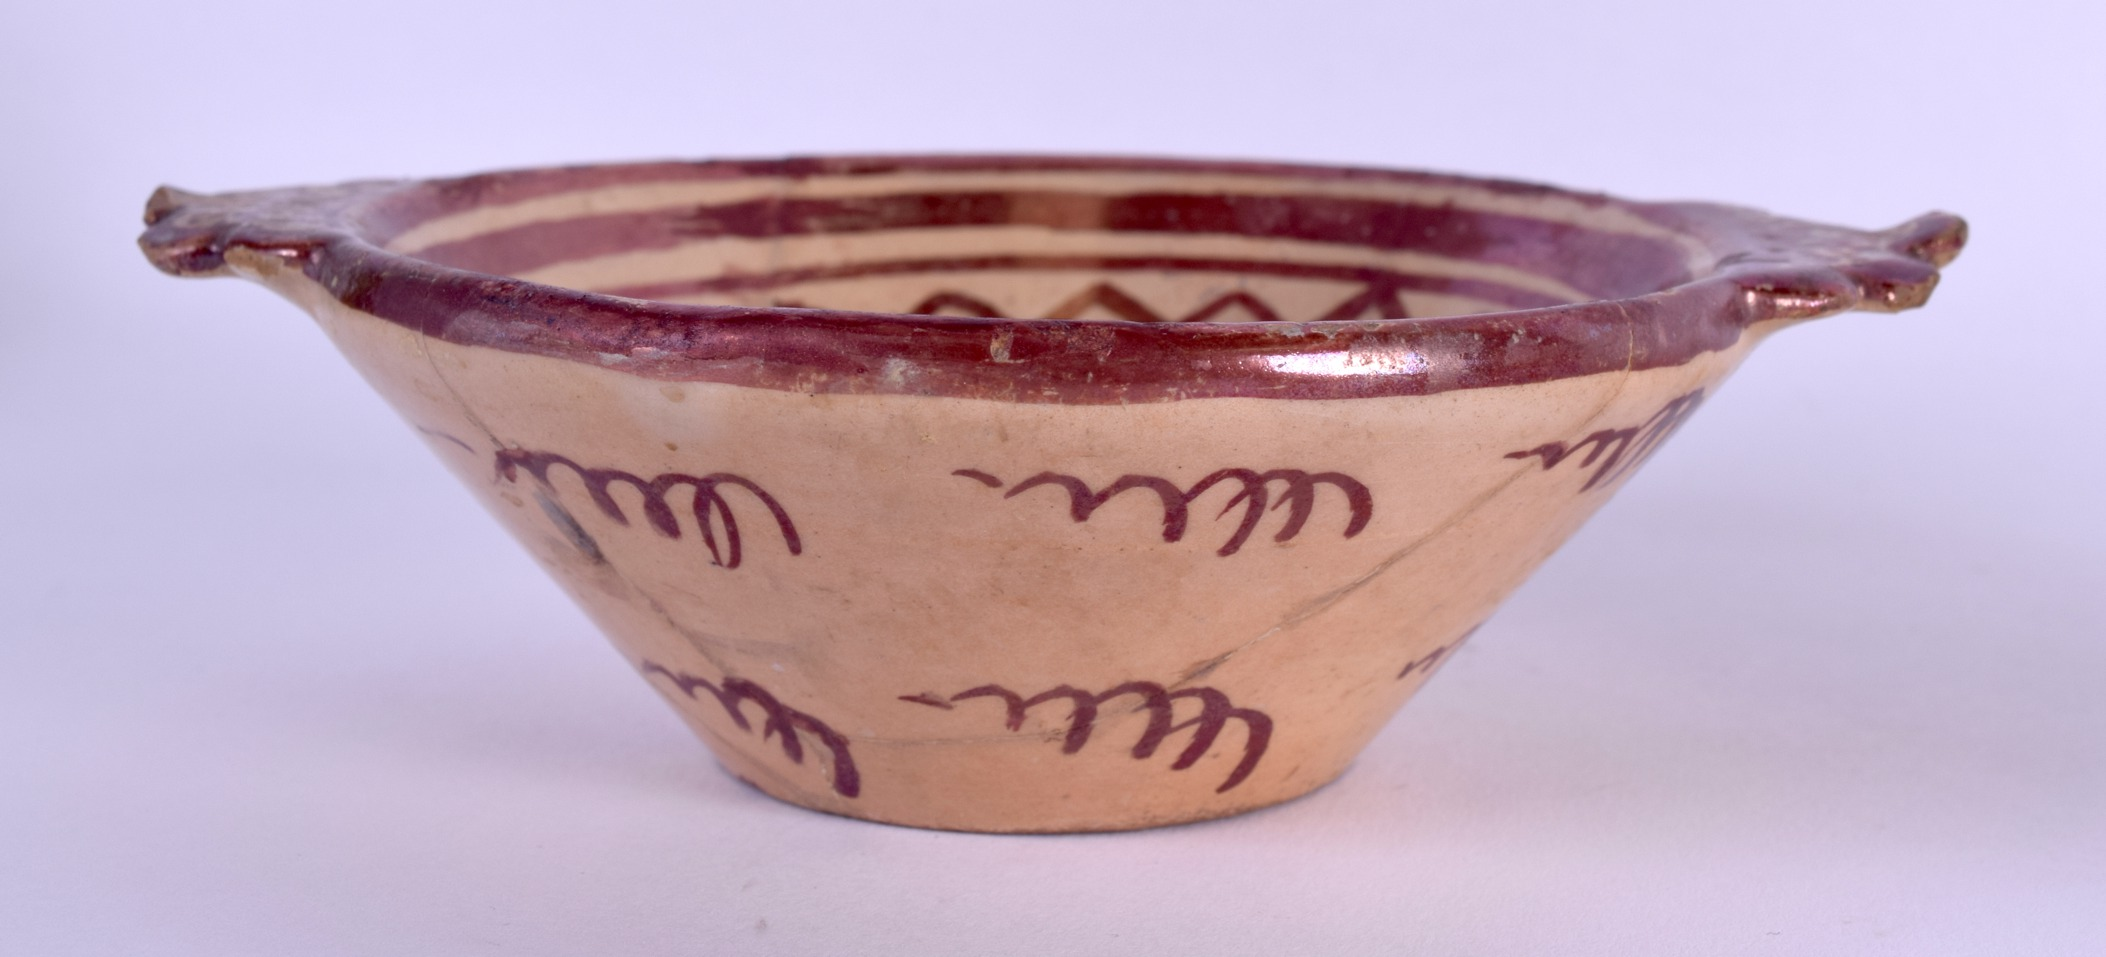 Lot 64 - AN EARLY HISPANO MORESQUE TIN GLAZED BOWL together with a matching saucer. 14 cm & 12 cm wide. (2)